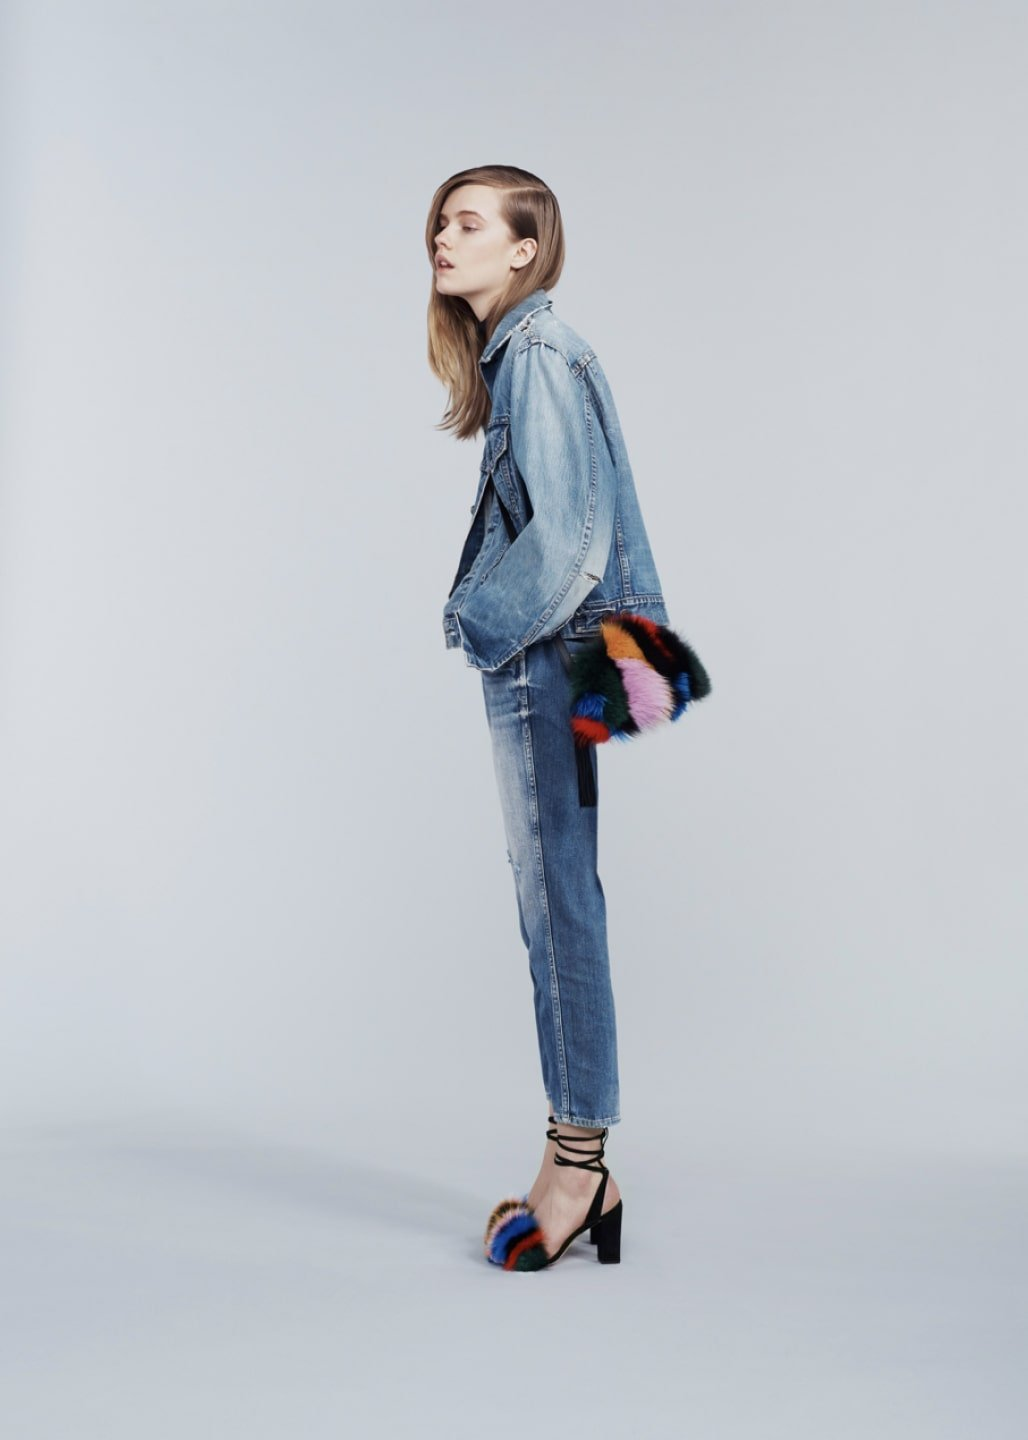 Model wearing jeans and jean jacket with Loeffler Randall peep-toe fur accented heels and matching purse. Art direction by RoAndCo